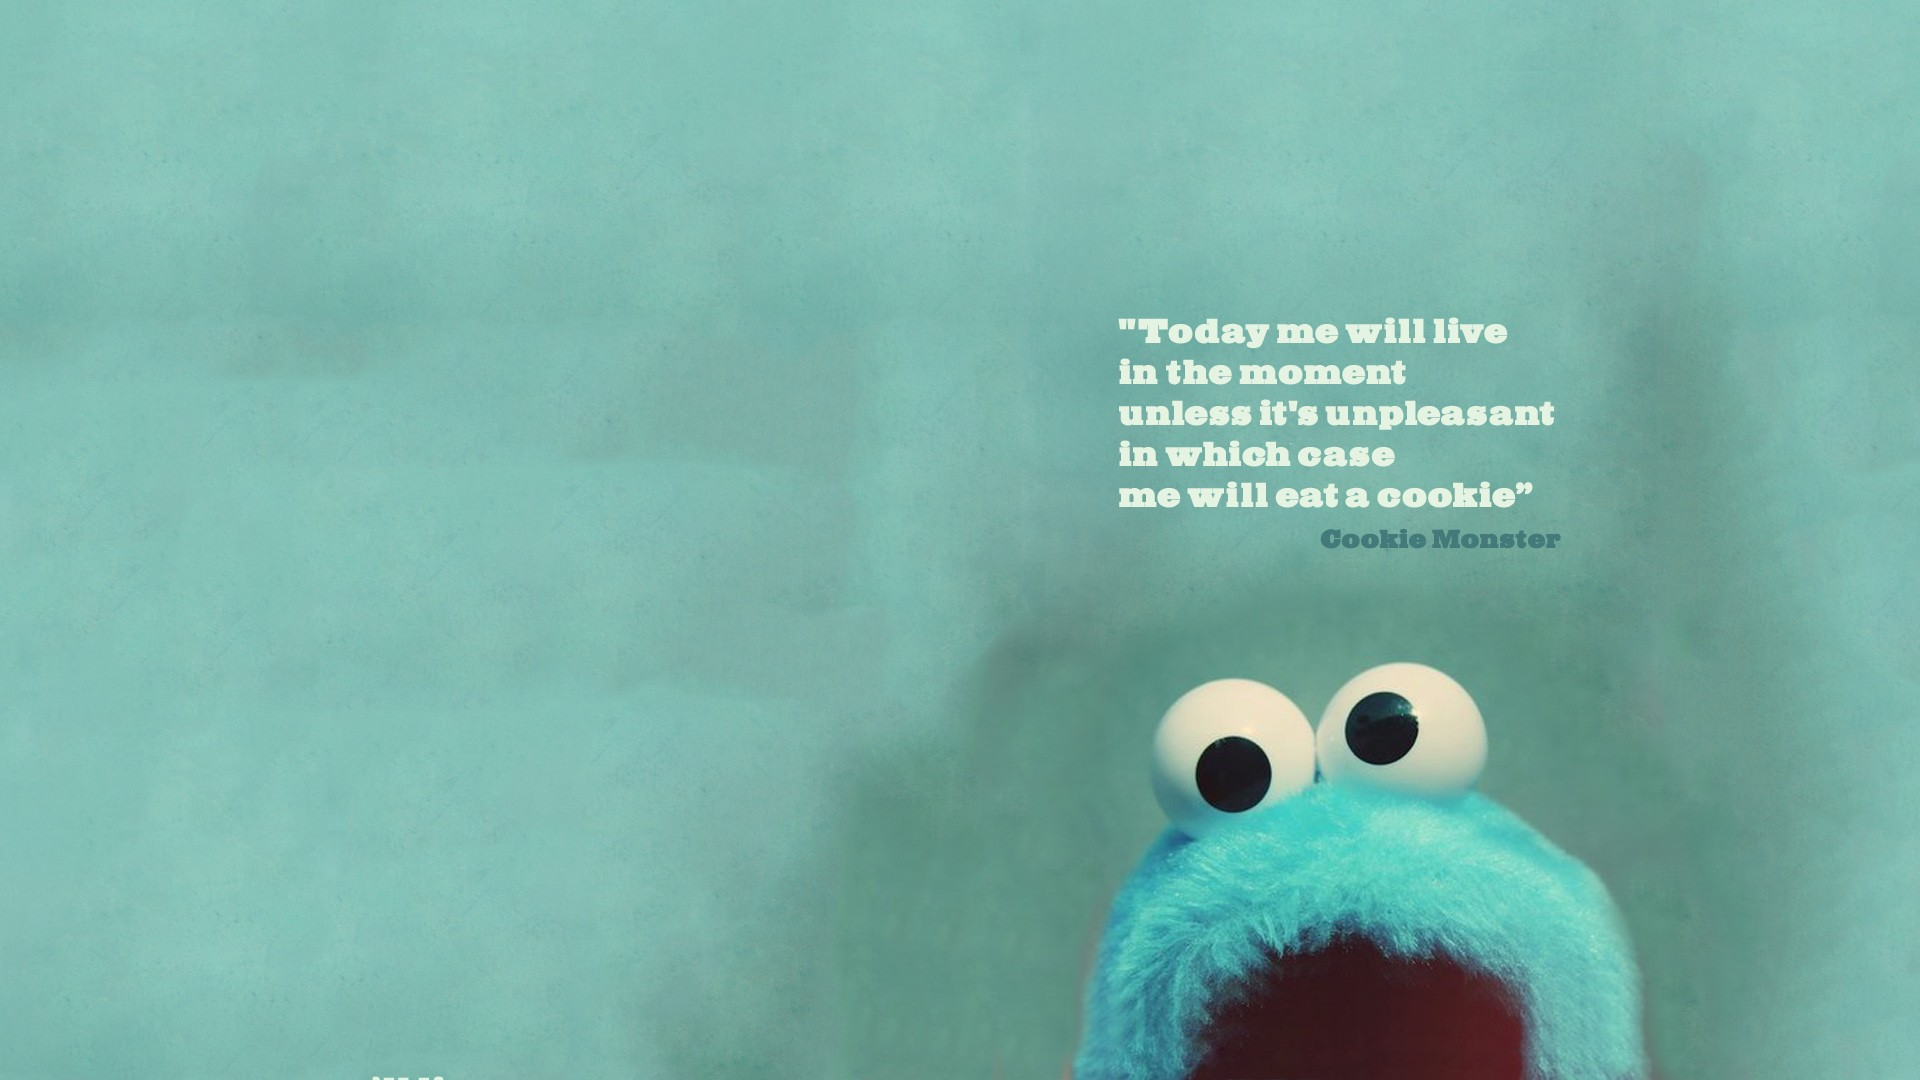 Hd wallpaper quotes for desktop - Cookie Monster Quote Wallpapers Hd